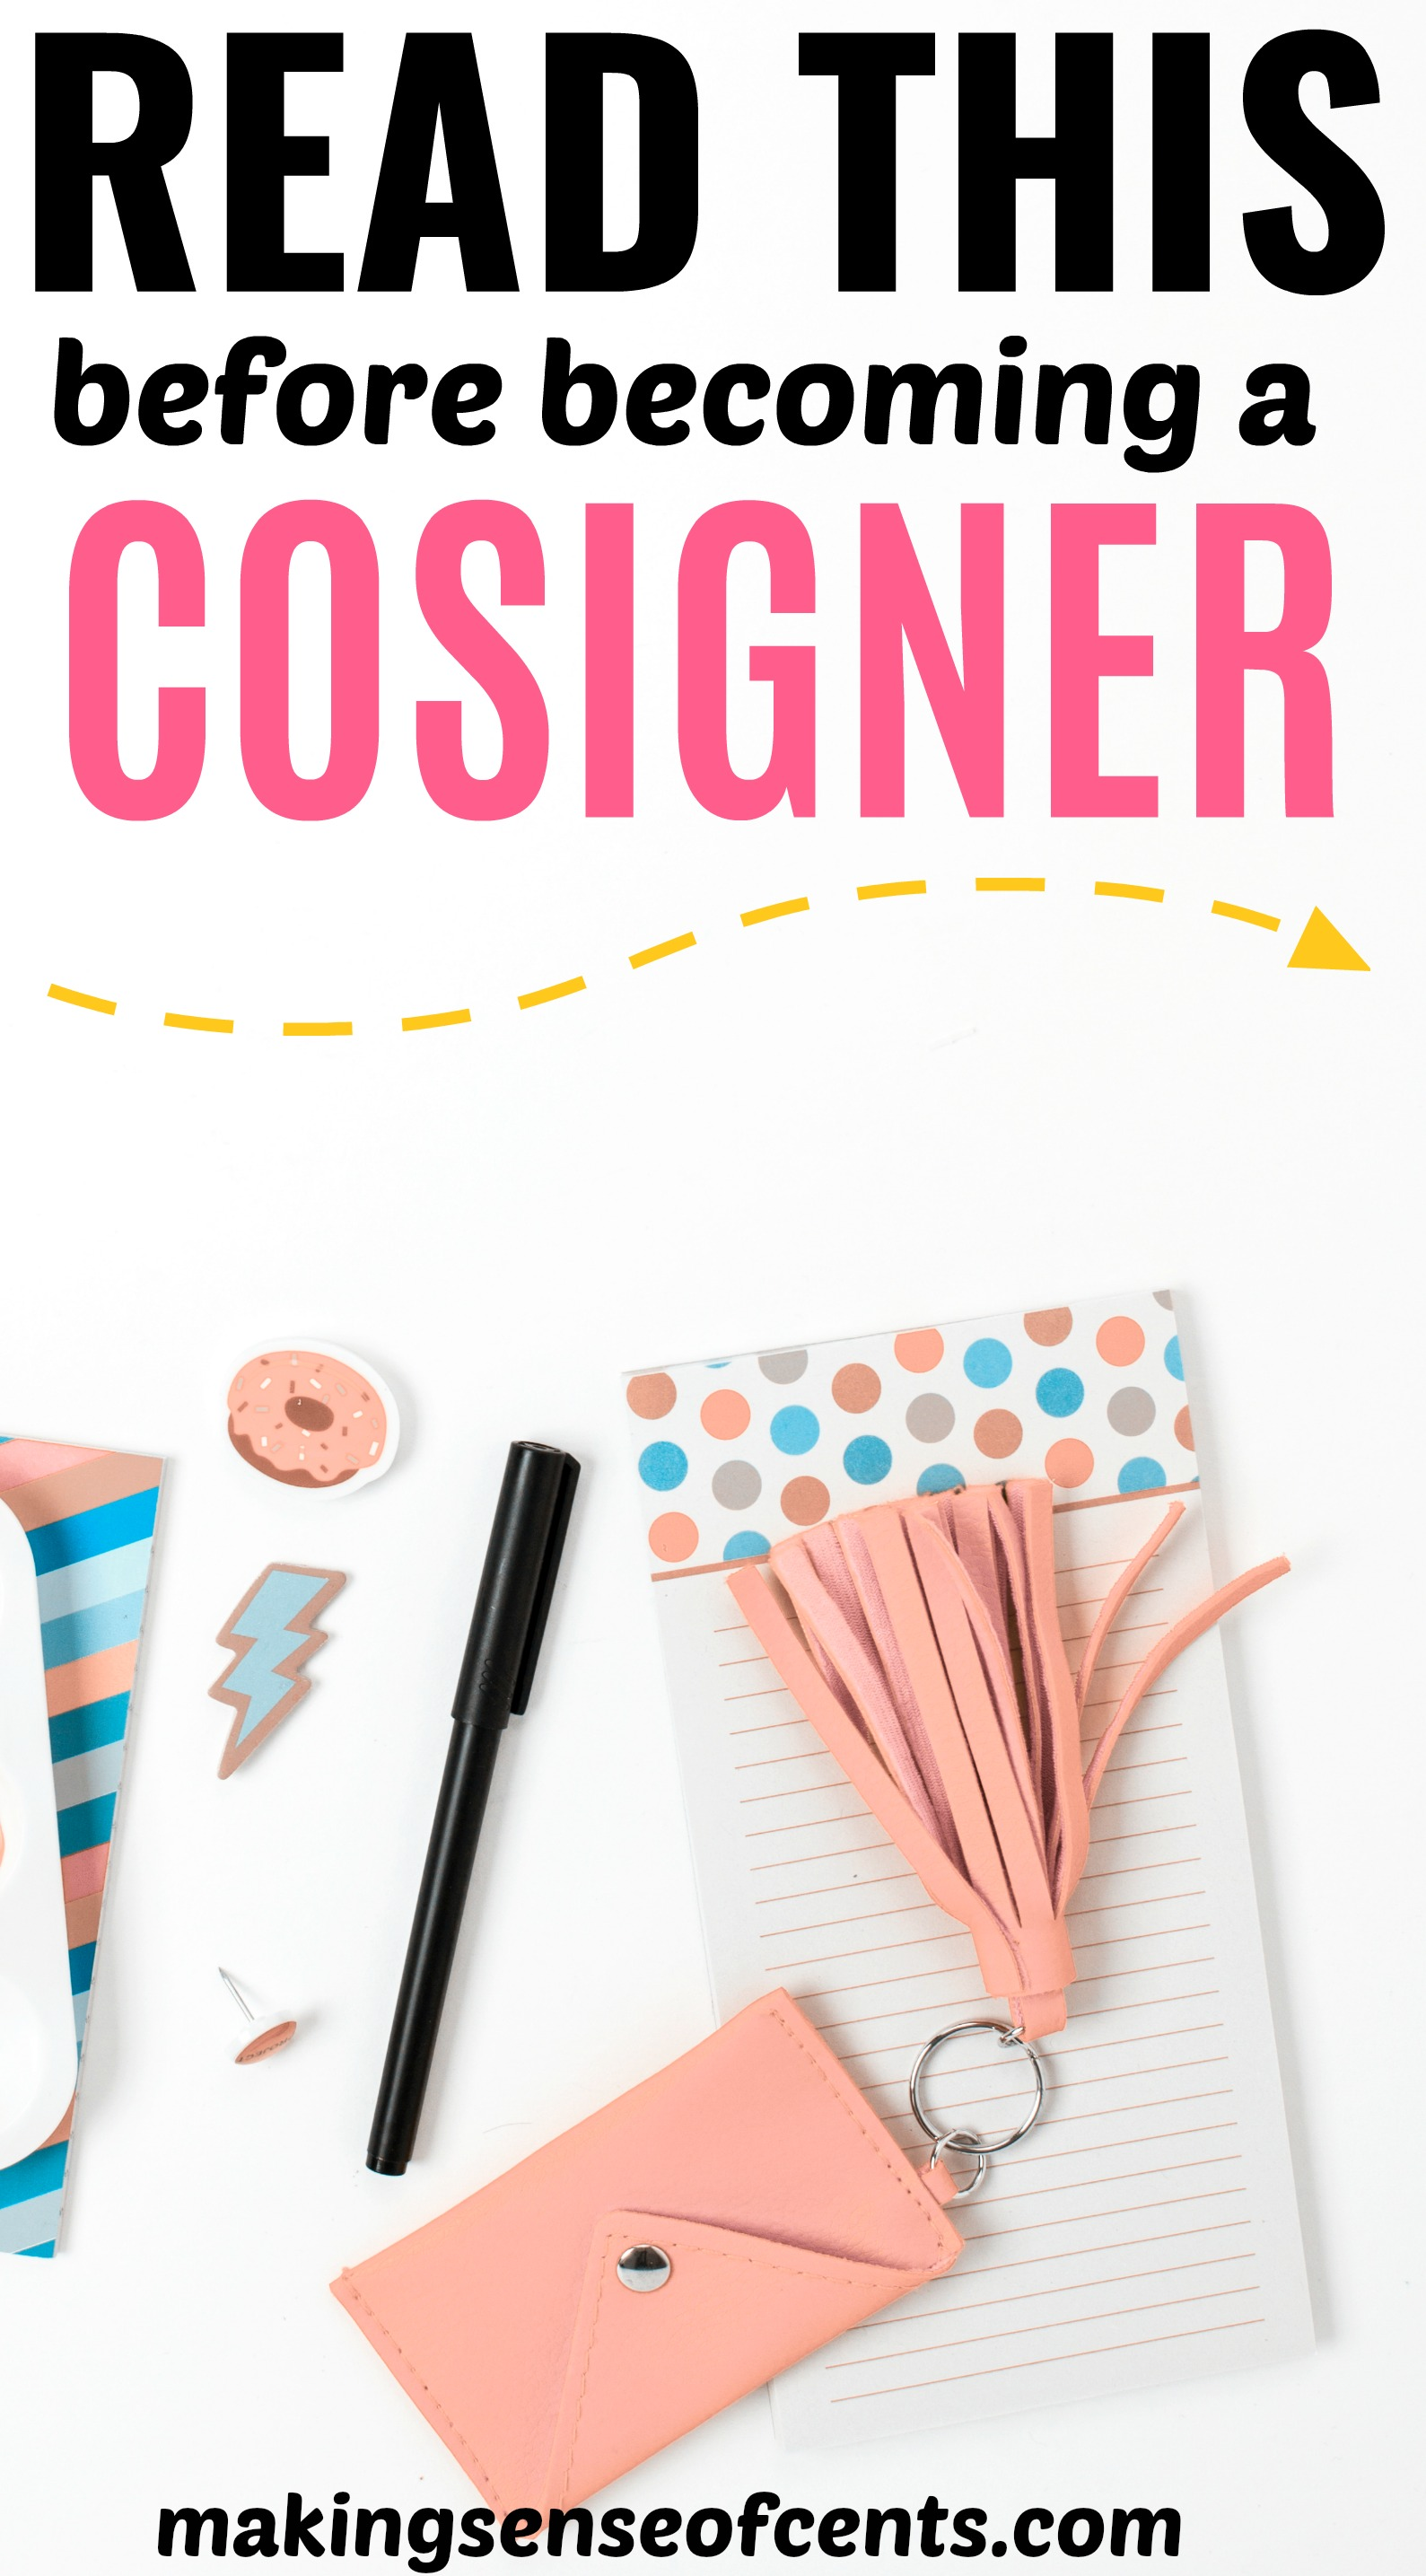 Cosigning A Loan - Read This Before Being A Cosigner